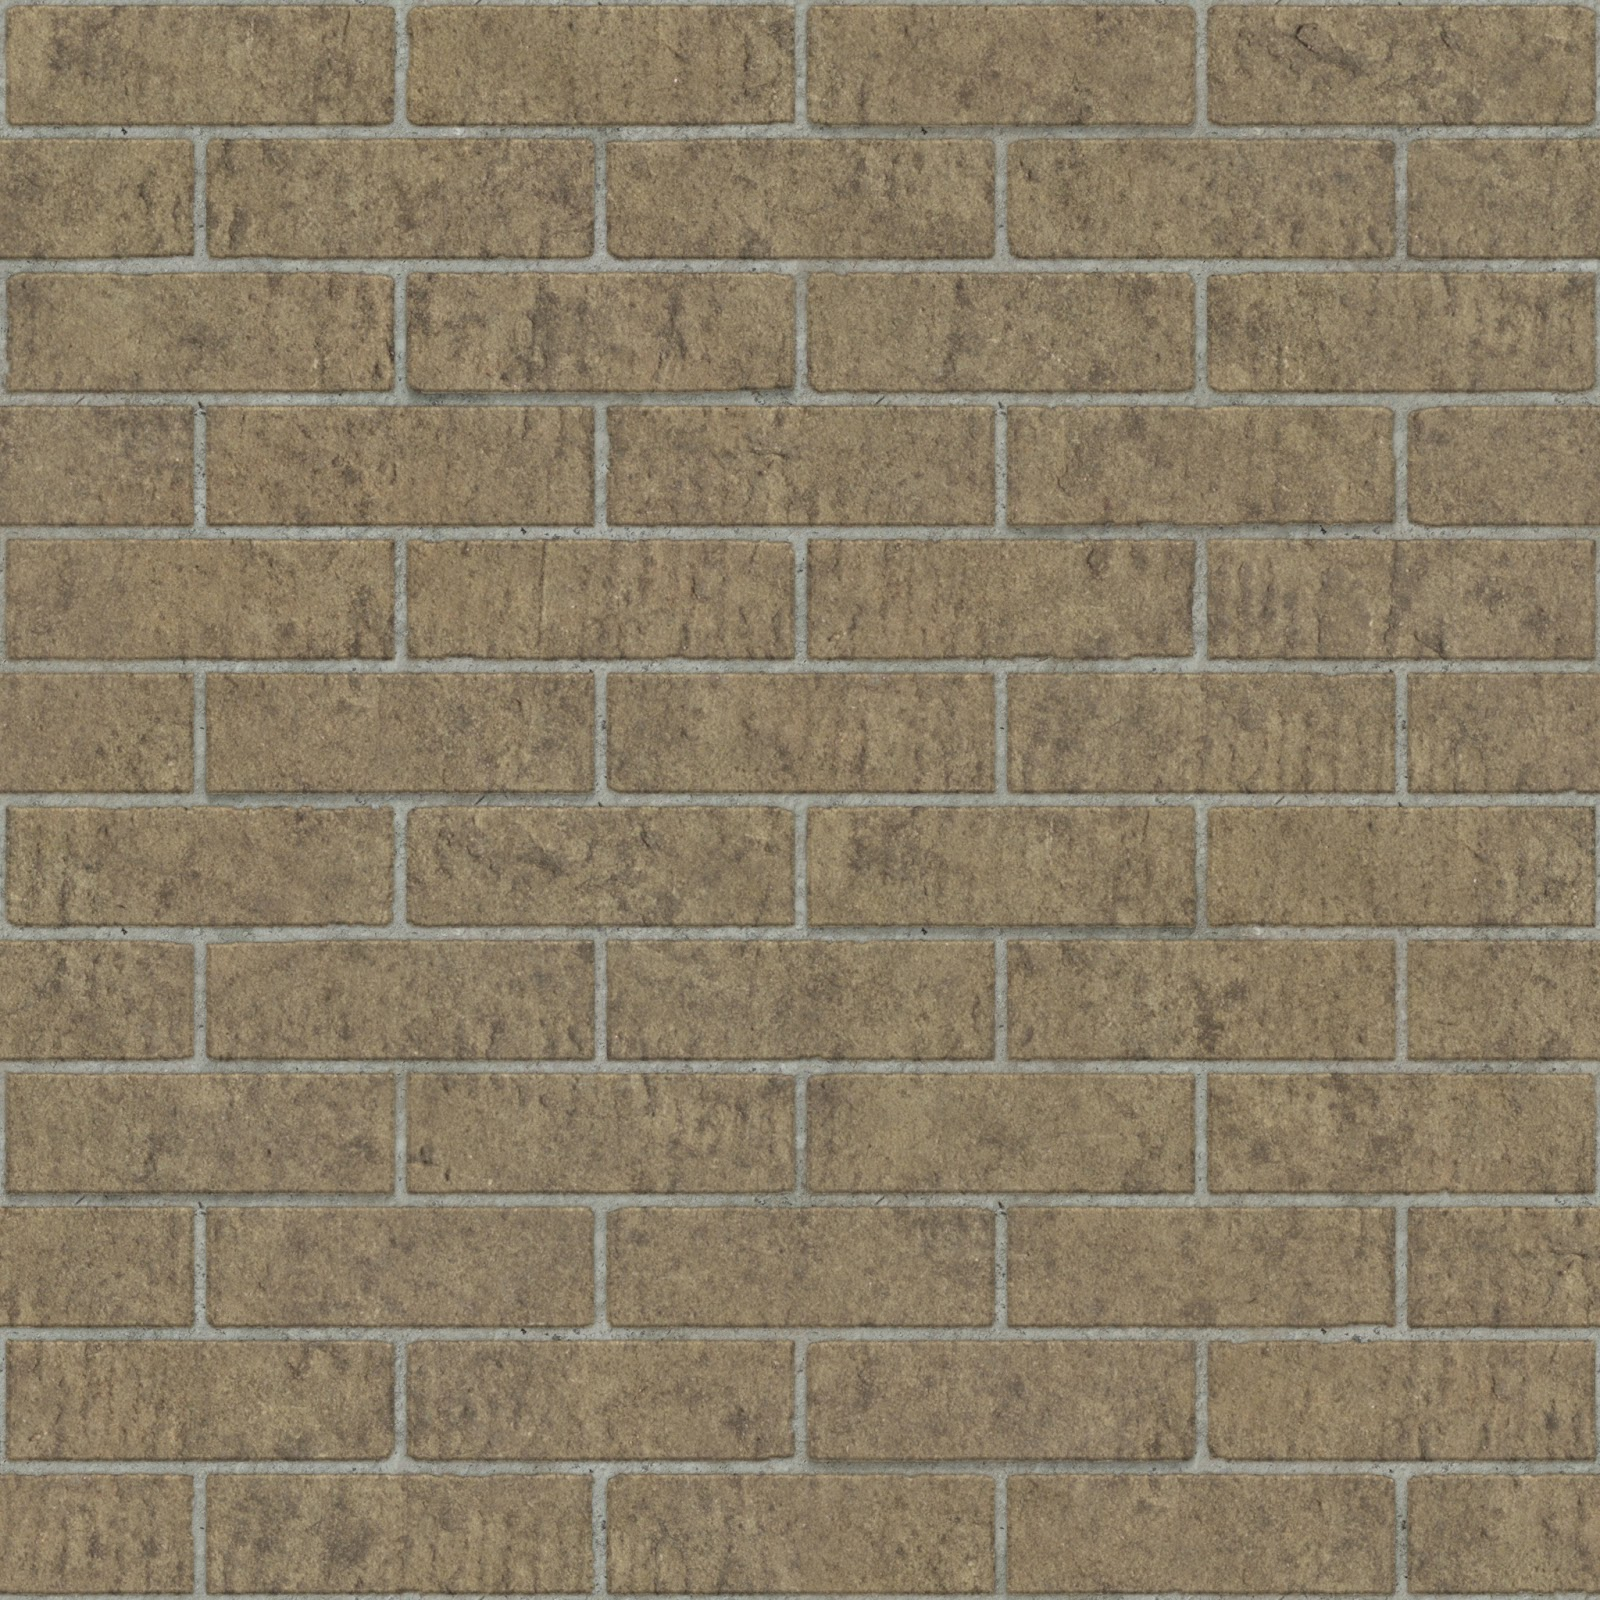 High Resolution Seamless Textures Brick Neat Seamless